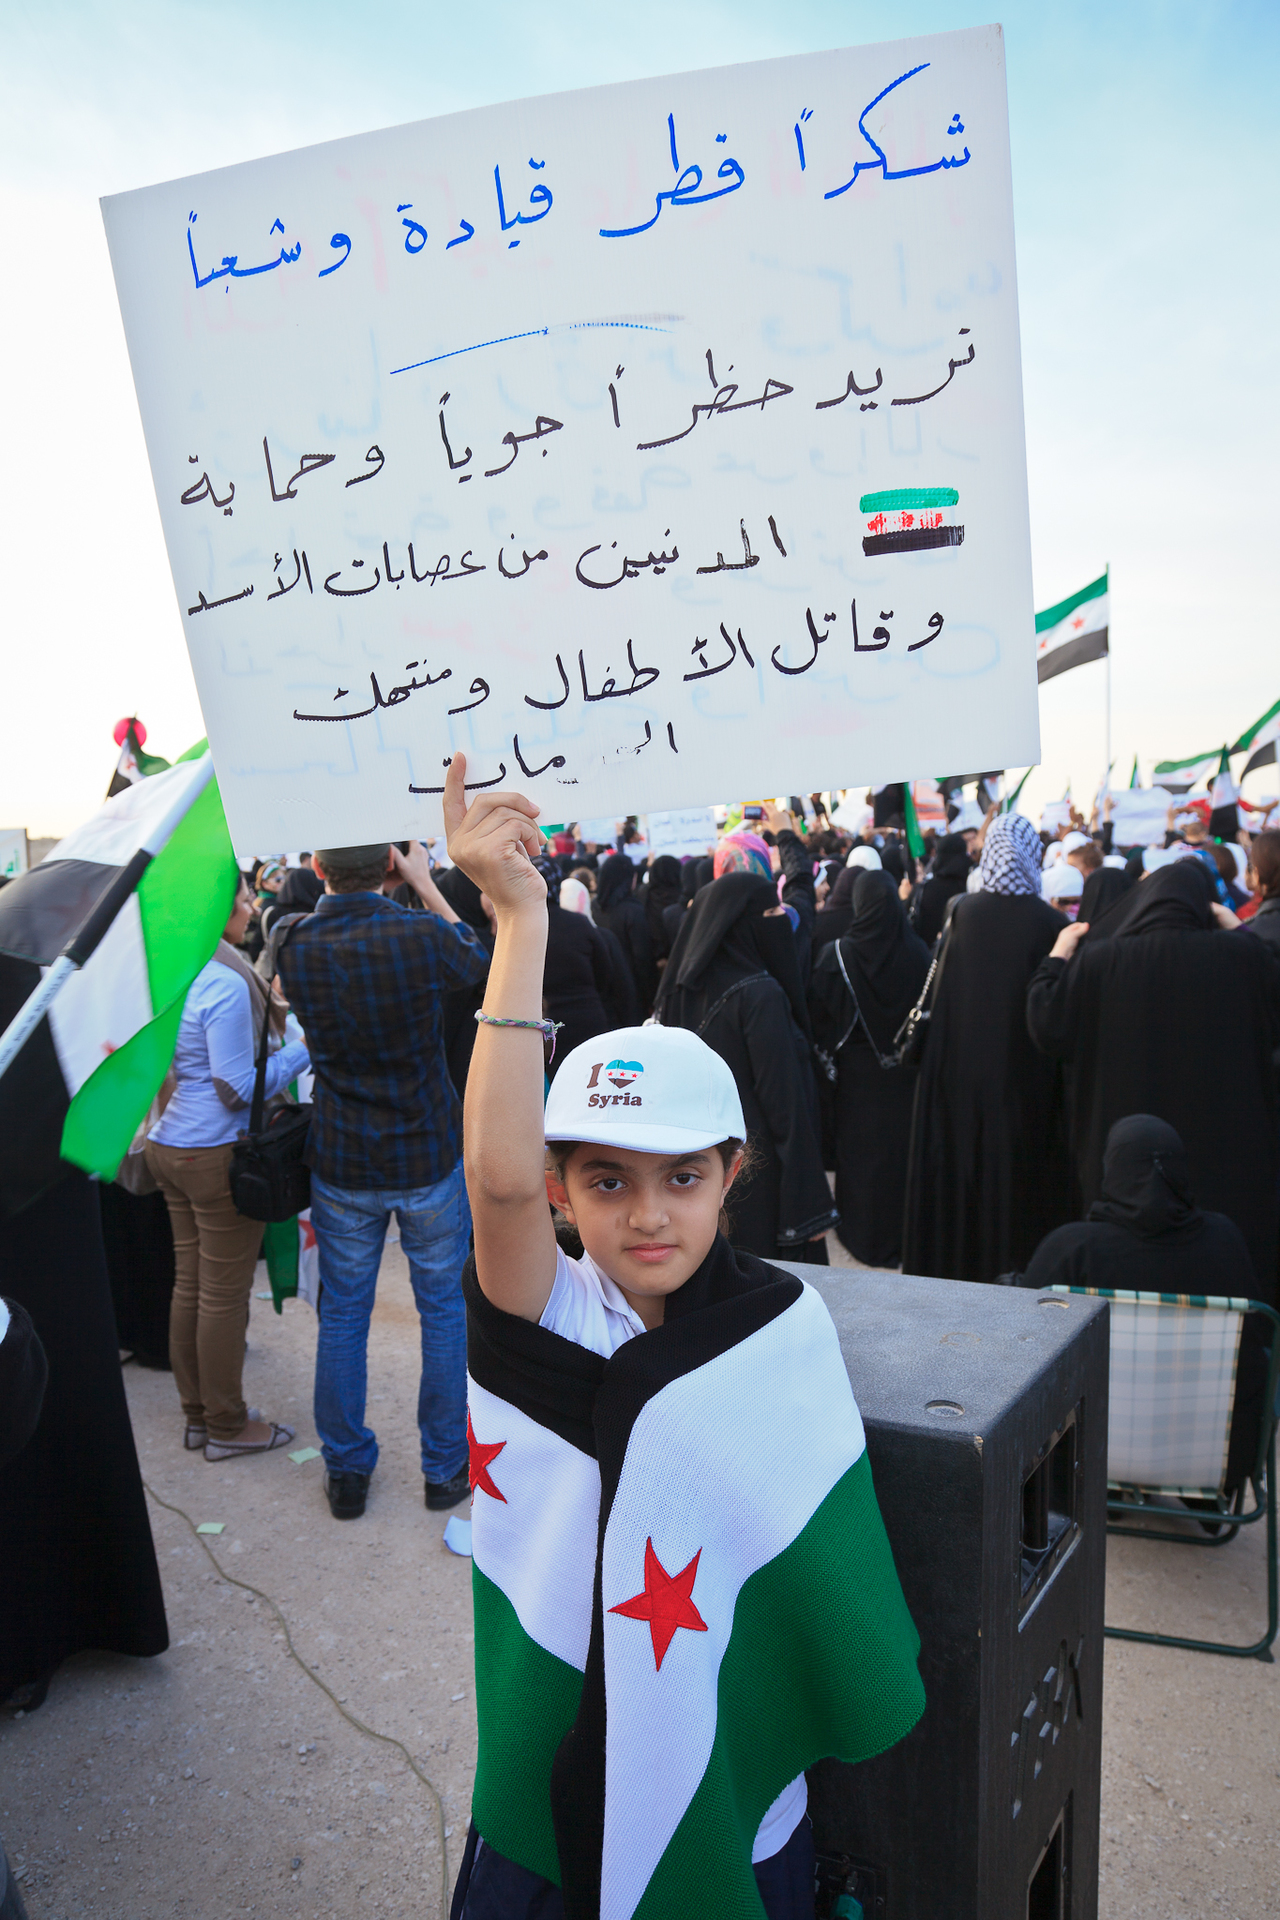 Syrians thank Qatar for its support